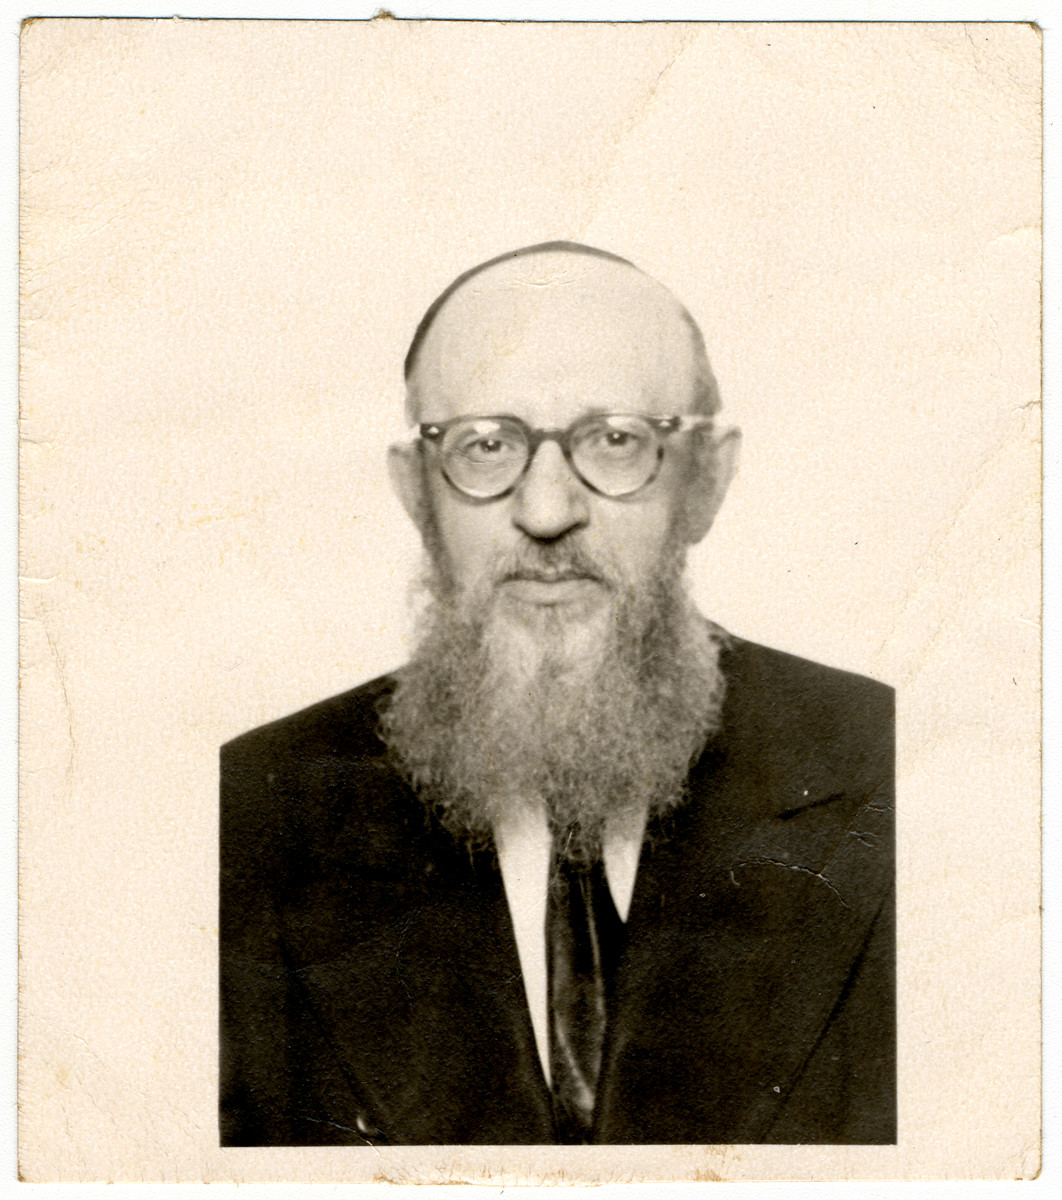 Studio portrait of Rabbi Zalman Schneerson, the leader of Orthodox Jewry in France.